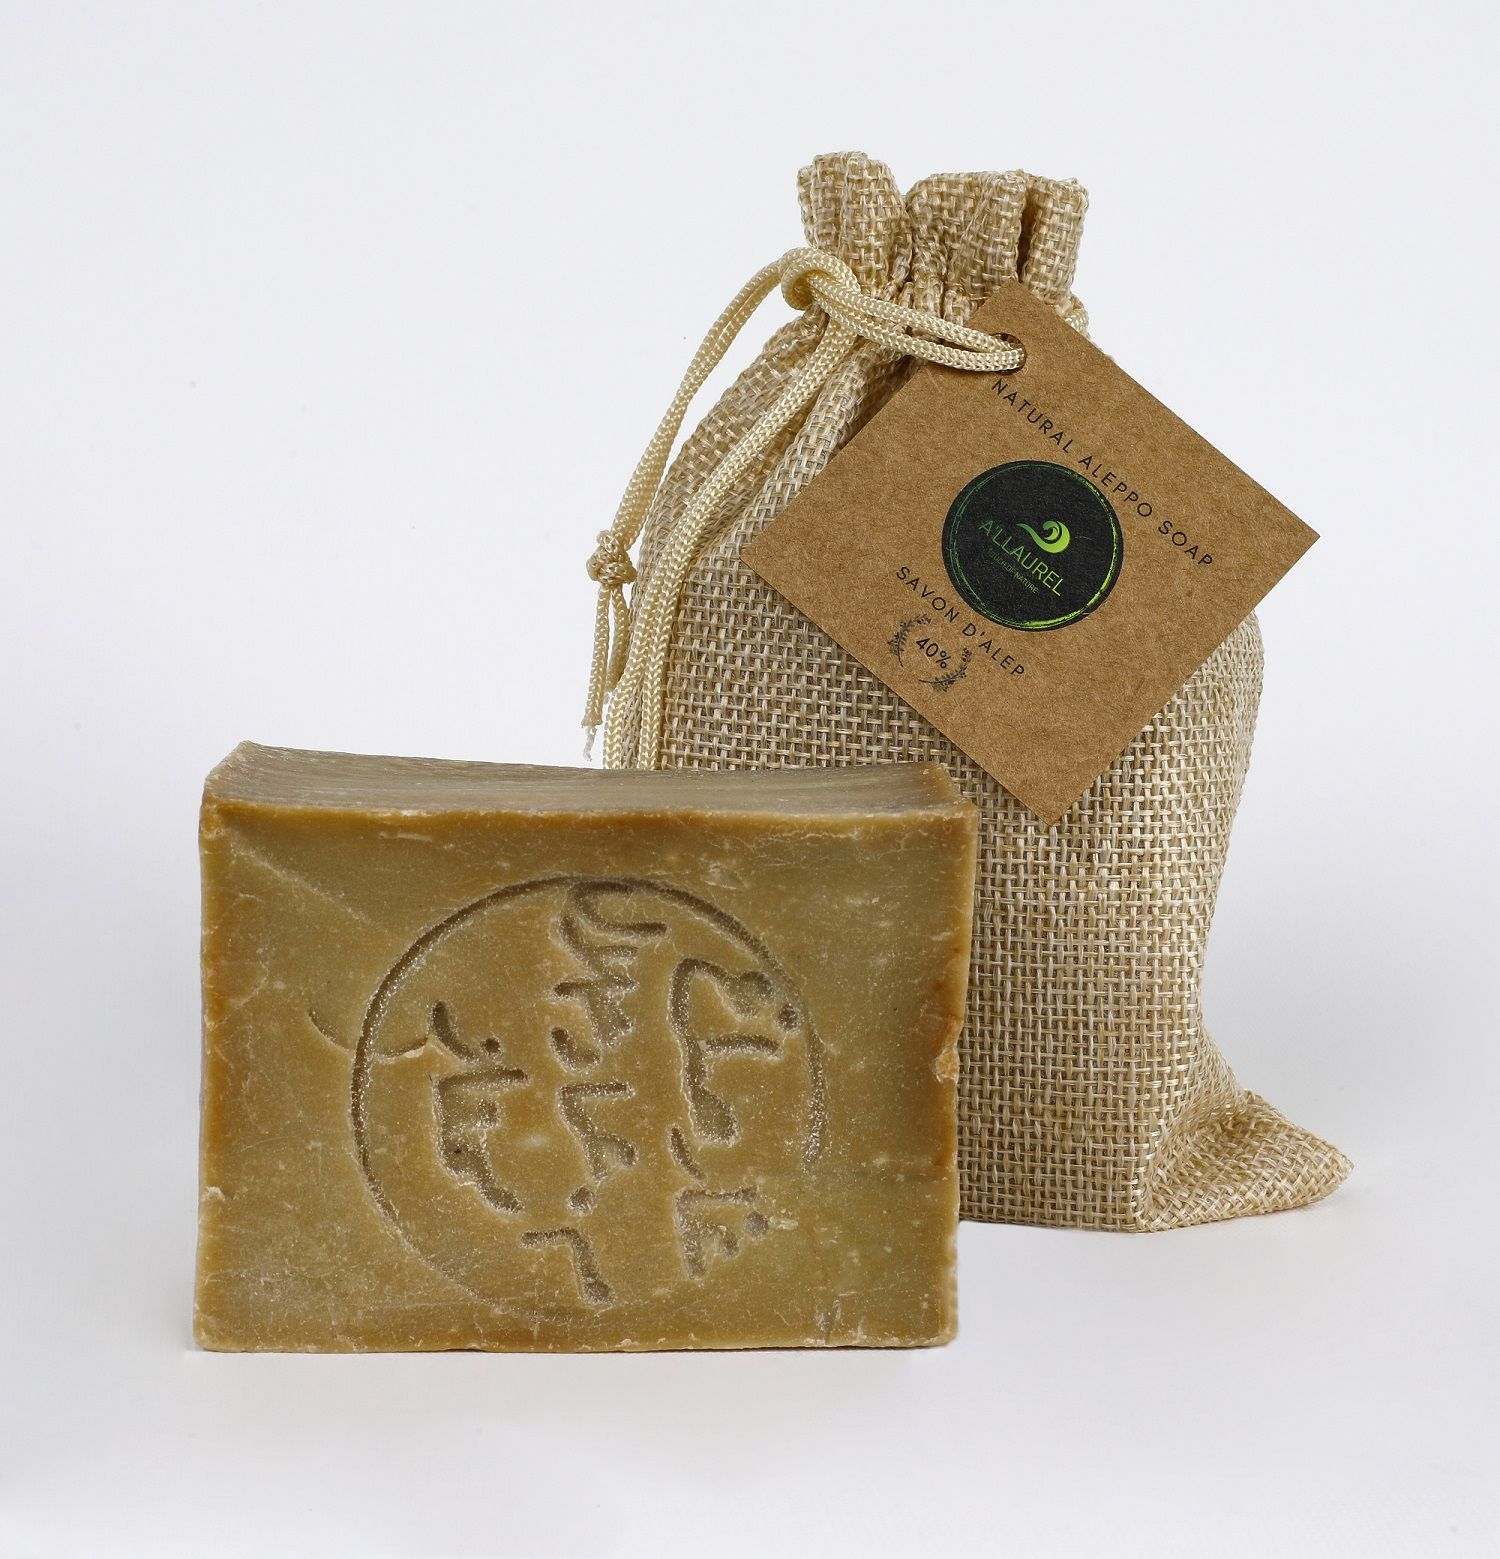 Aleppo Soap 190 gr Original Authentic Olive Oil Soap with Laurel Oil with different Laurel Oil Percentages ( 5% to 100%)